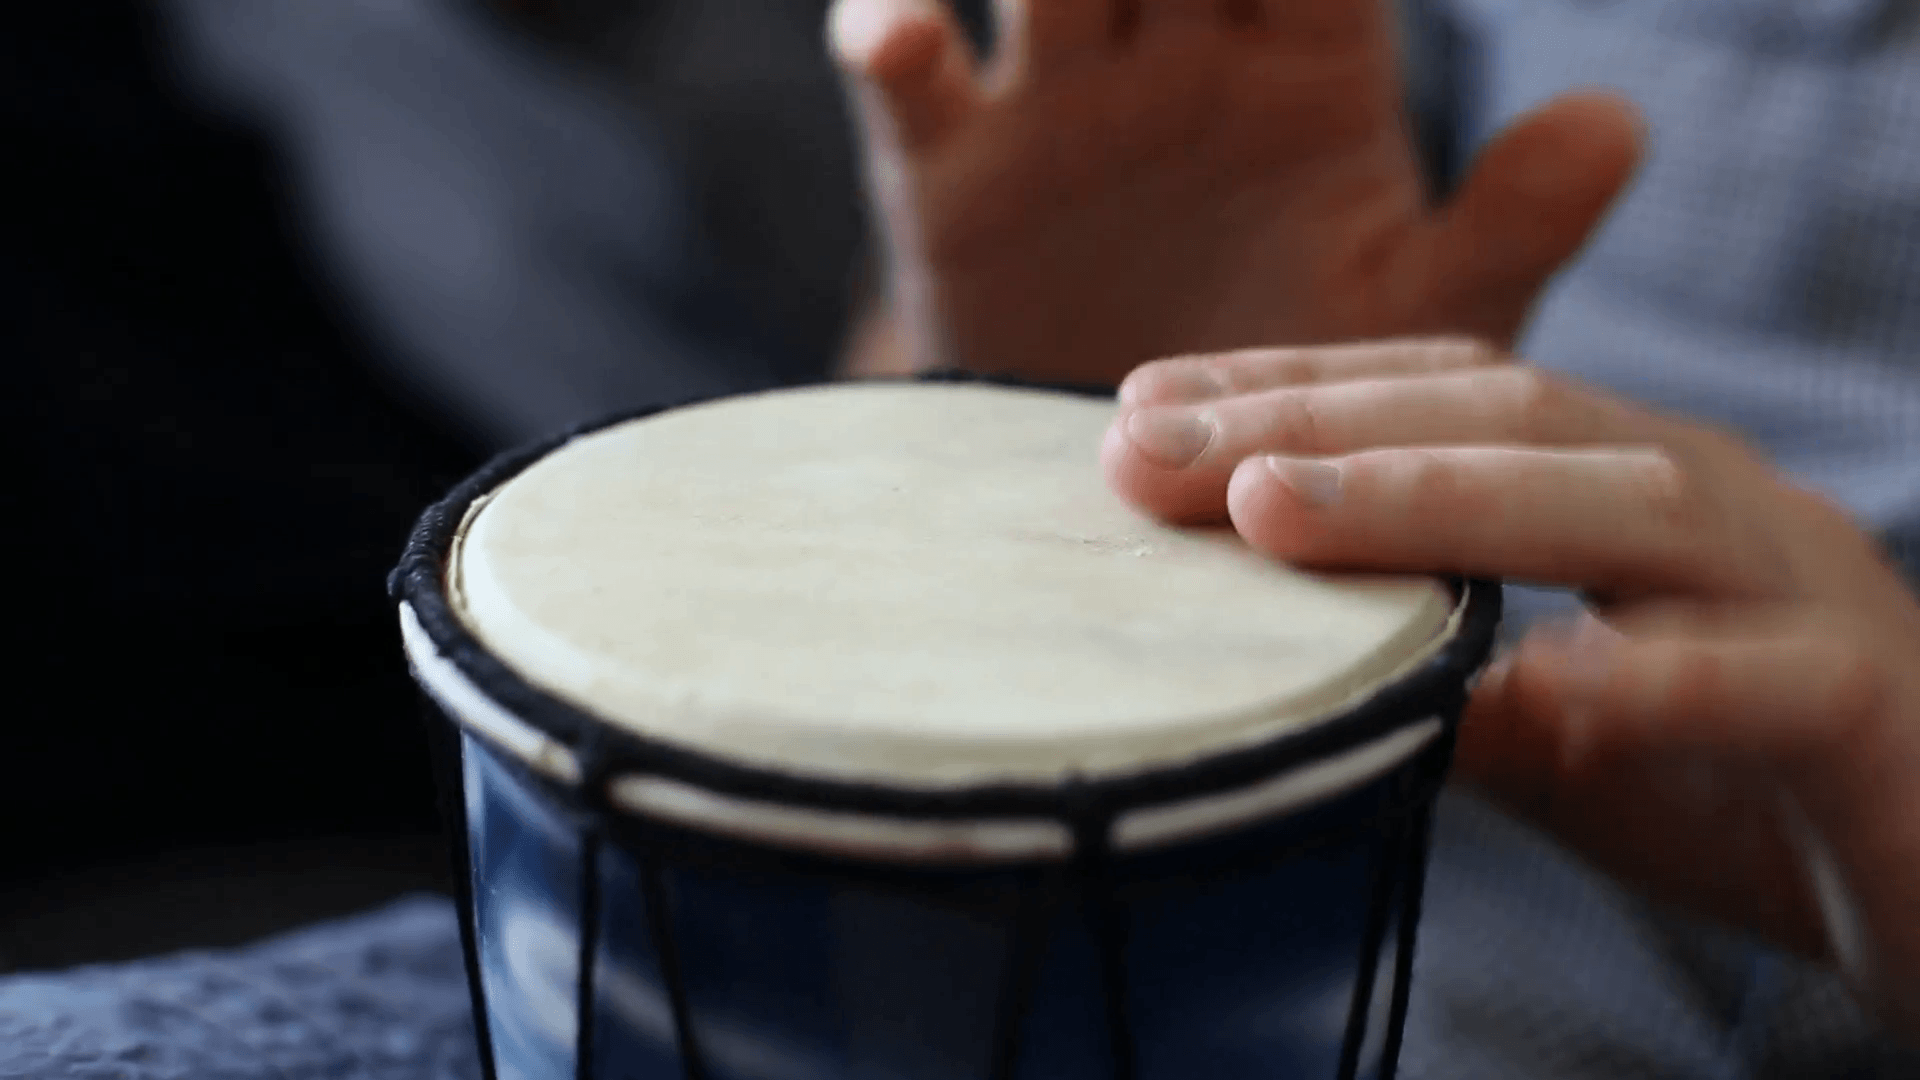 Playing Bongo drum close up HD stock footage. Hand tapping a Bongo